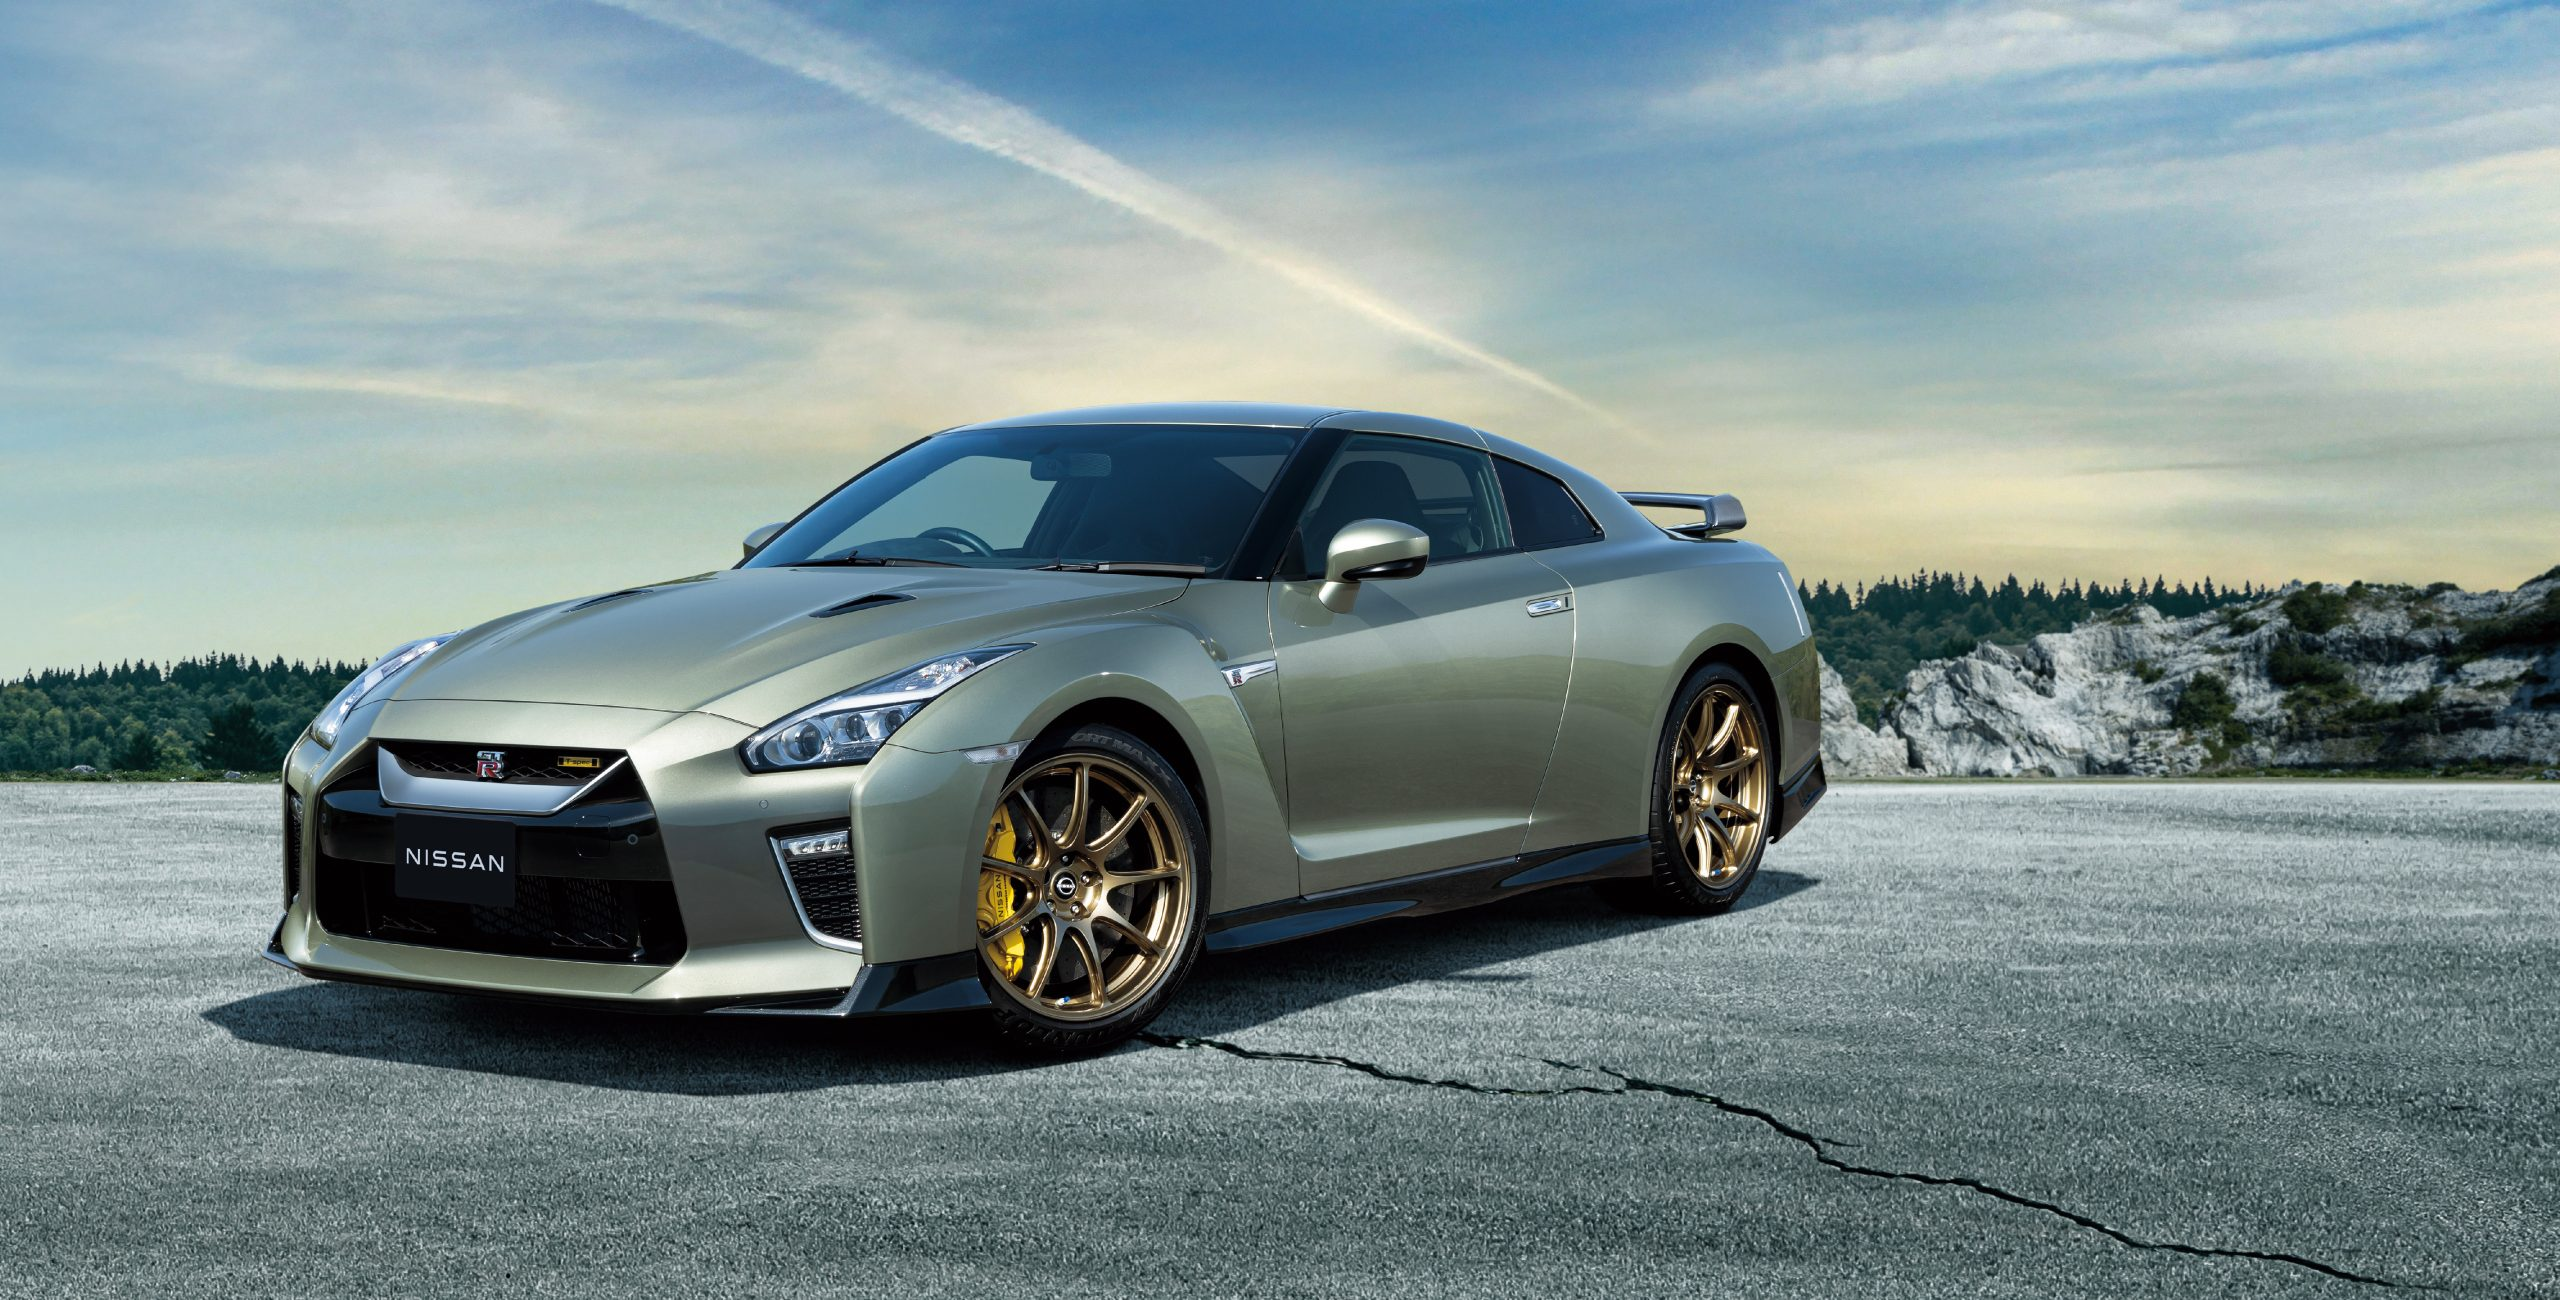 2022 Nissan GT-R front3-4